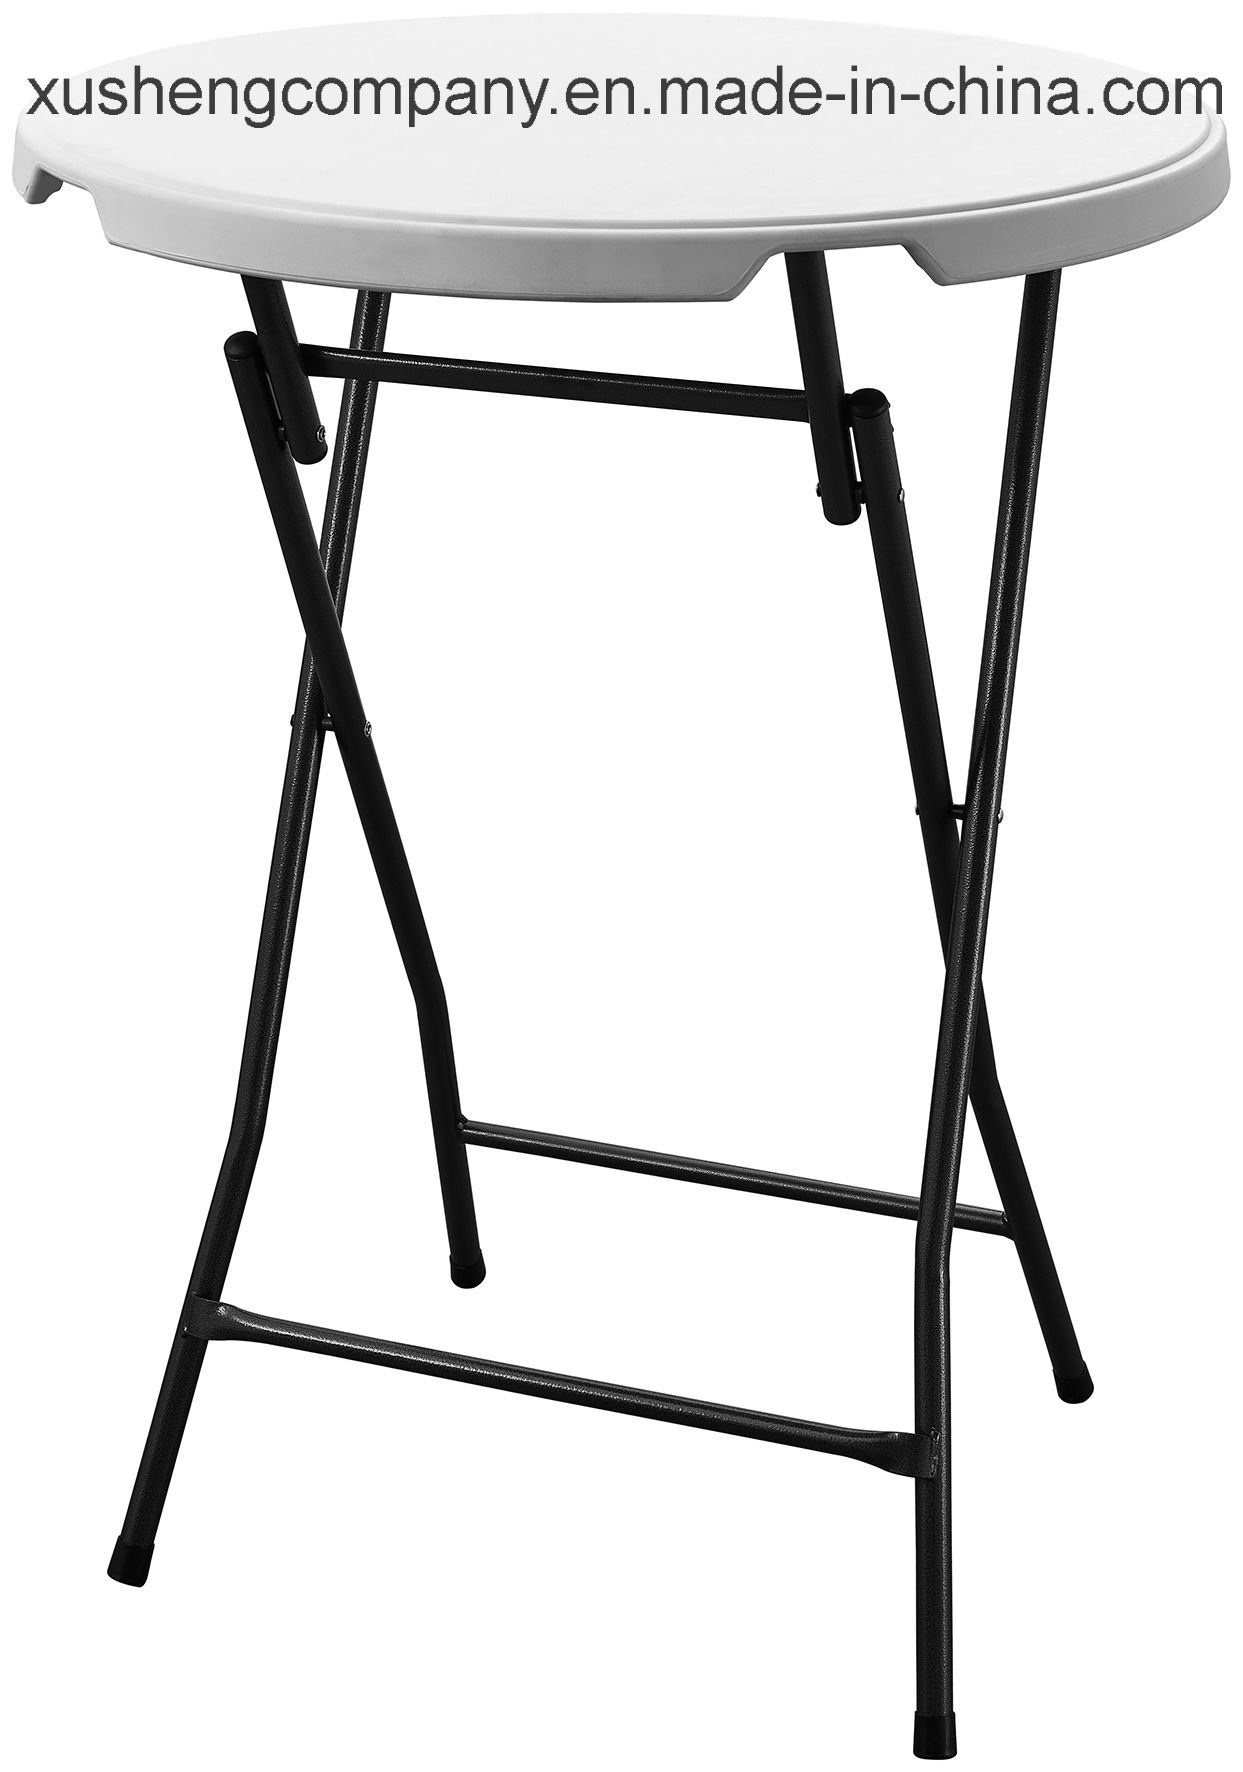 Lifetime 4 Ft Table Costco 8 Foot Adjustable Height Folding Counter Walmart Flash Furniture 32 Inch Round Bar In White Tall Outdoor Gear High Quality Legs 36 Expocafeperu Com